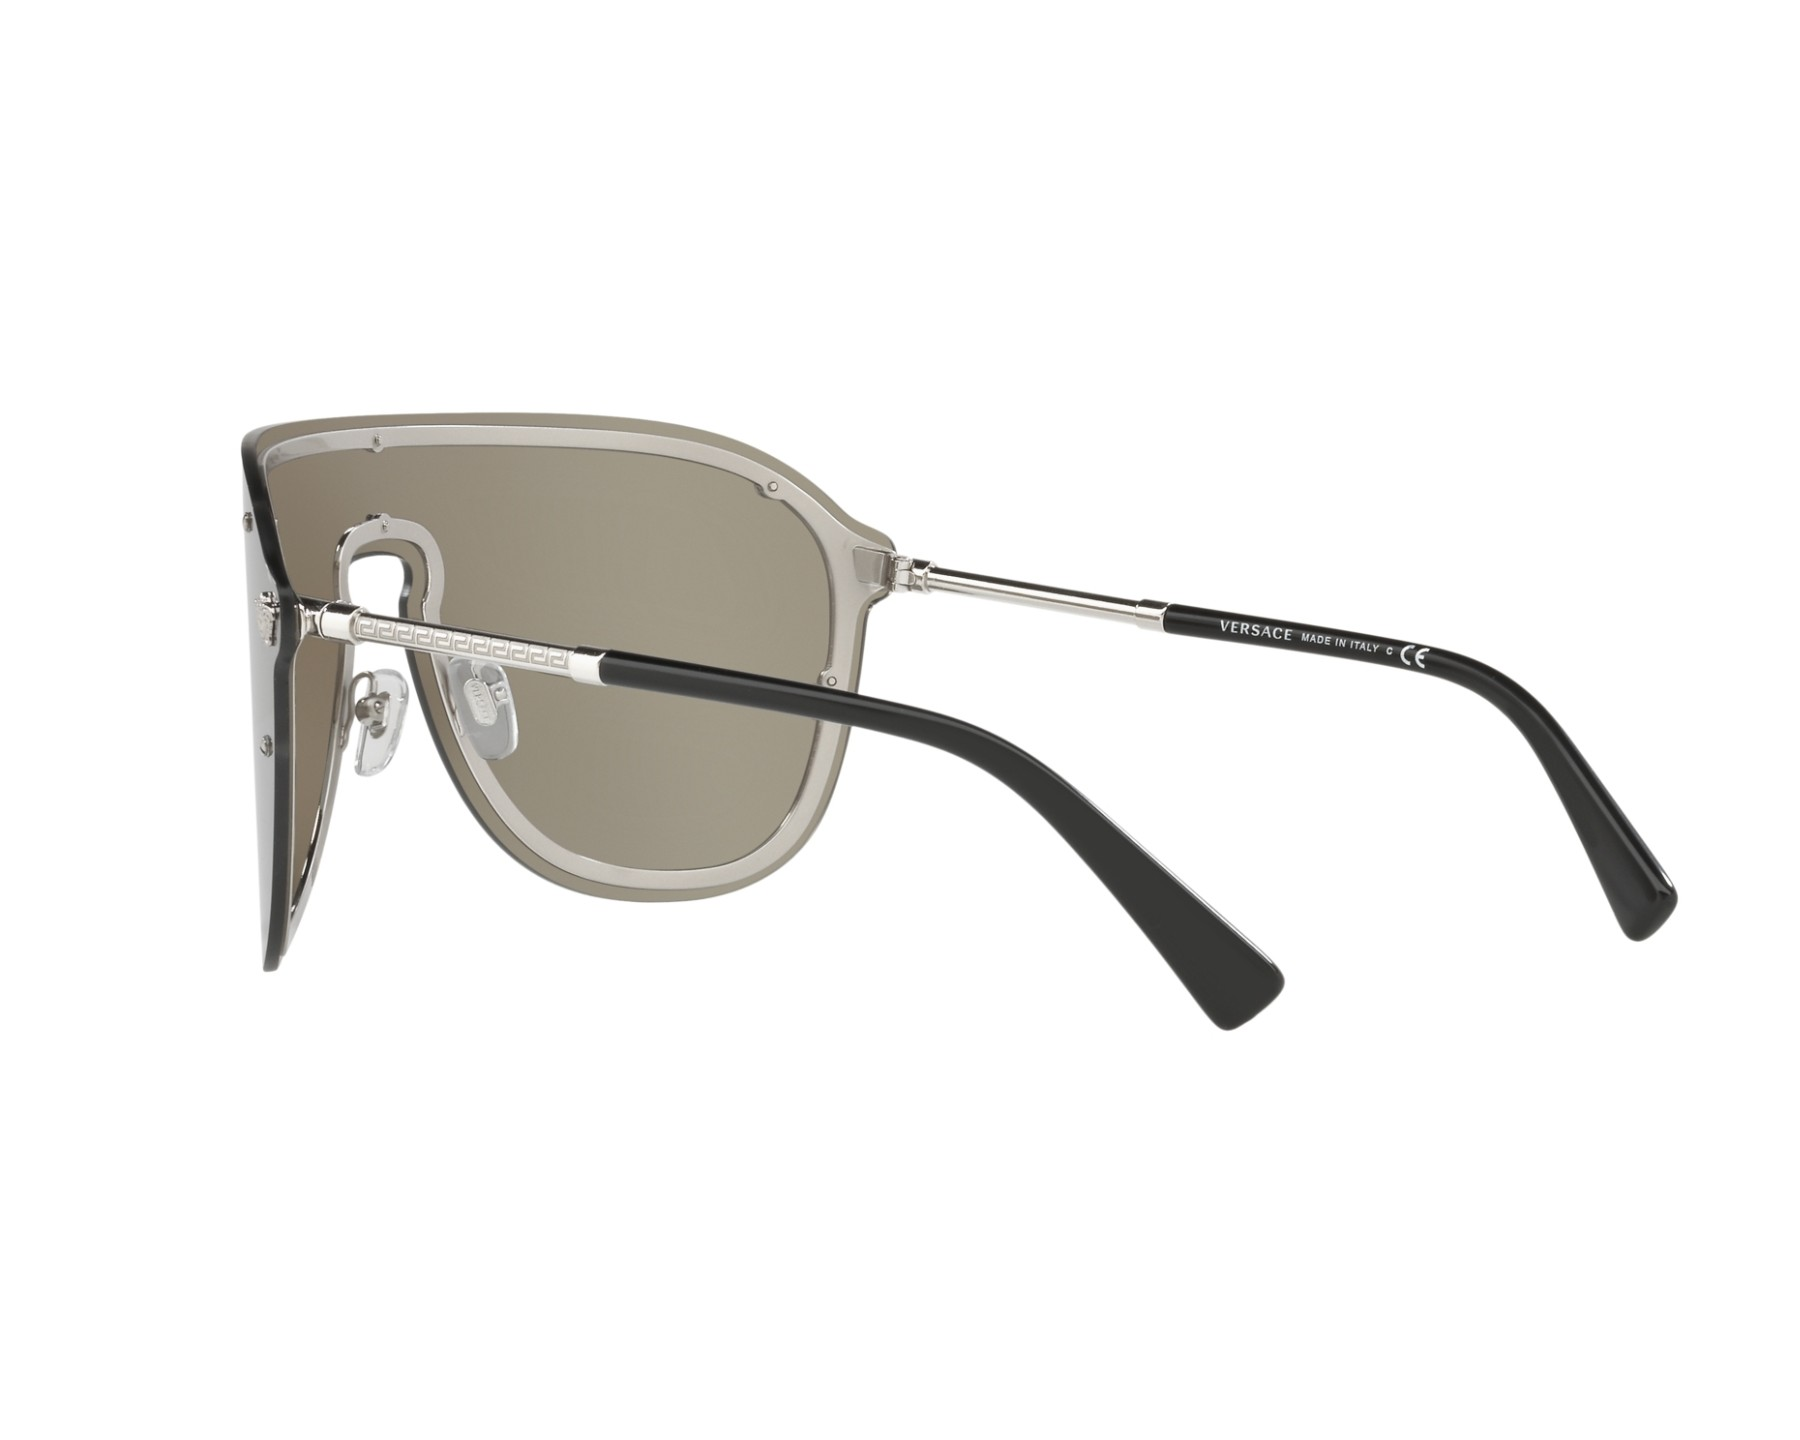 05d38f55a2 Sunglasses Versace VE-2180 10006G 44- Silver 360 degree view 5